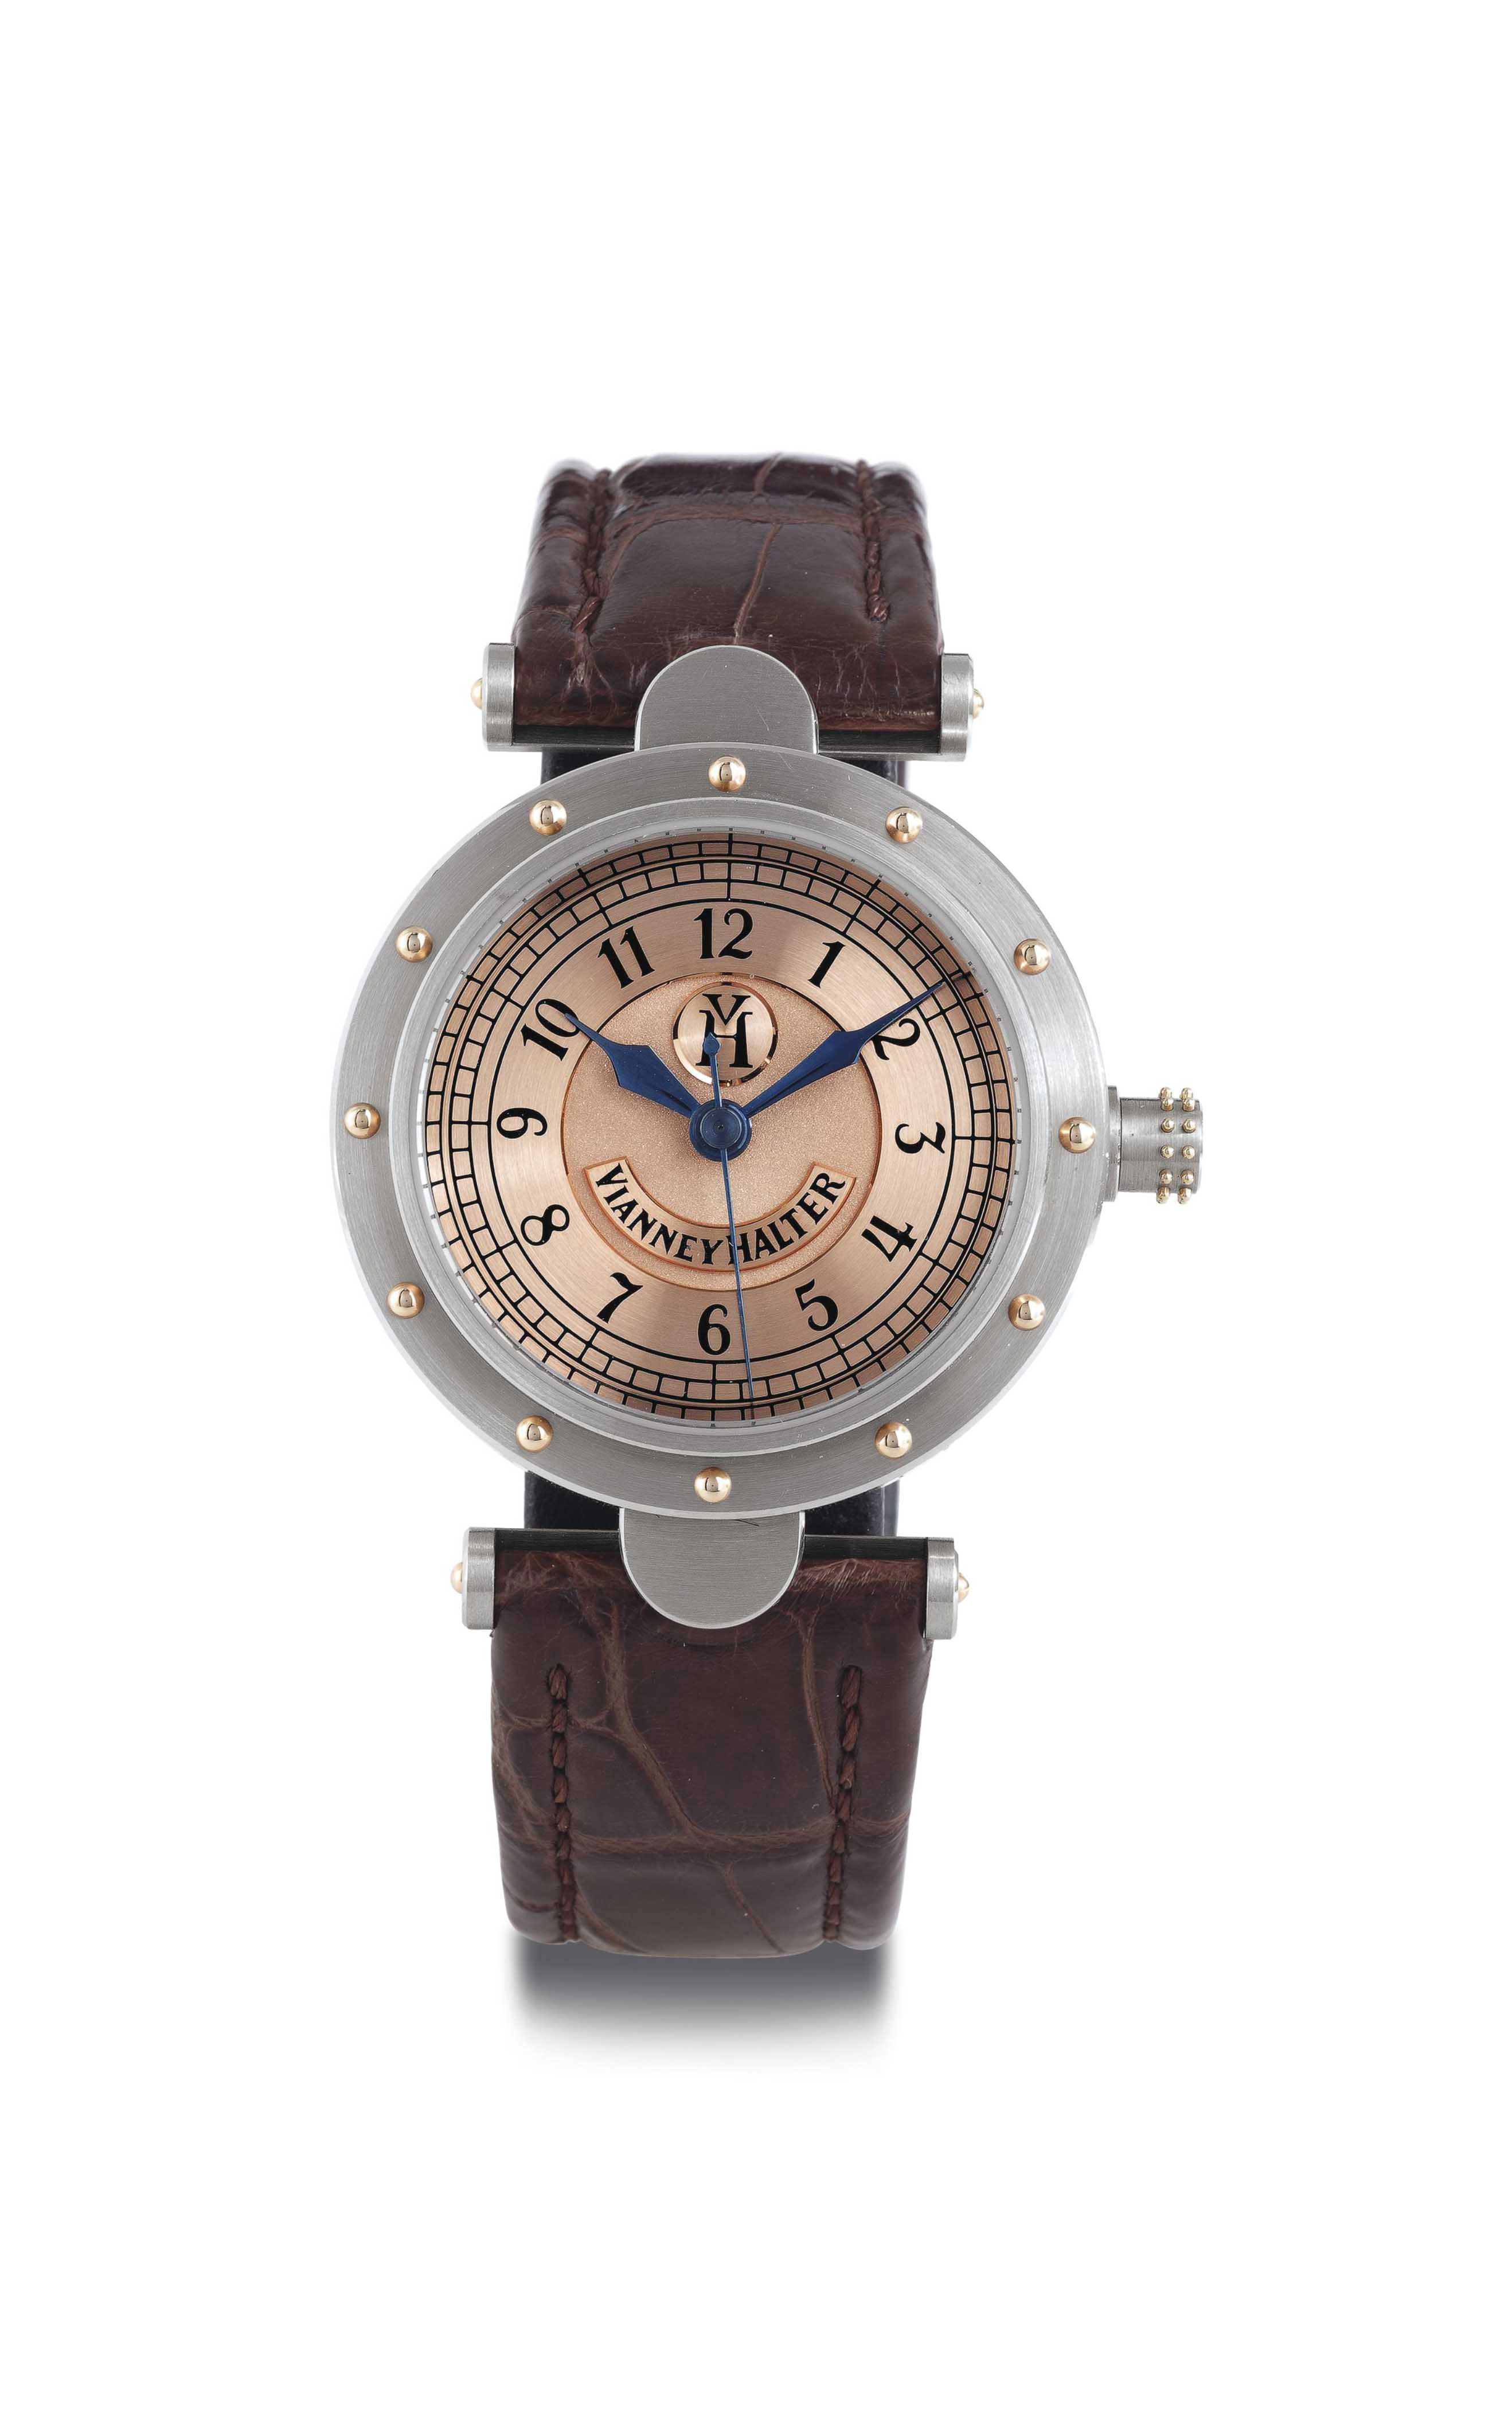 VIANNEY HALTER.  AN 18K WHITE GOLD AUTOMATIC WRISTWATCH WITH CENTER SECONDS